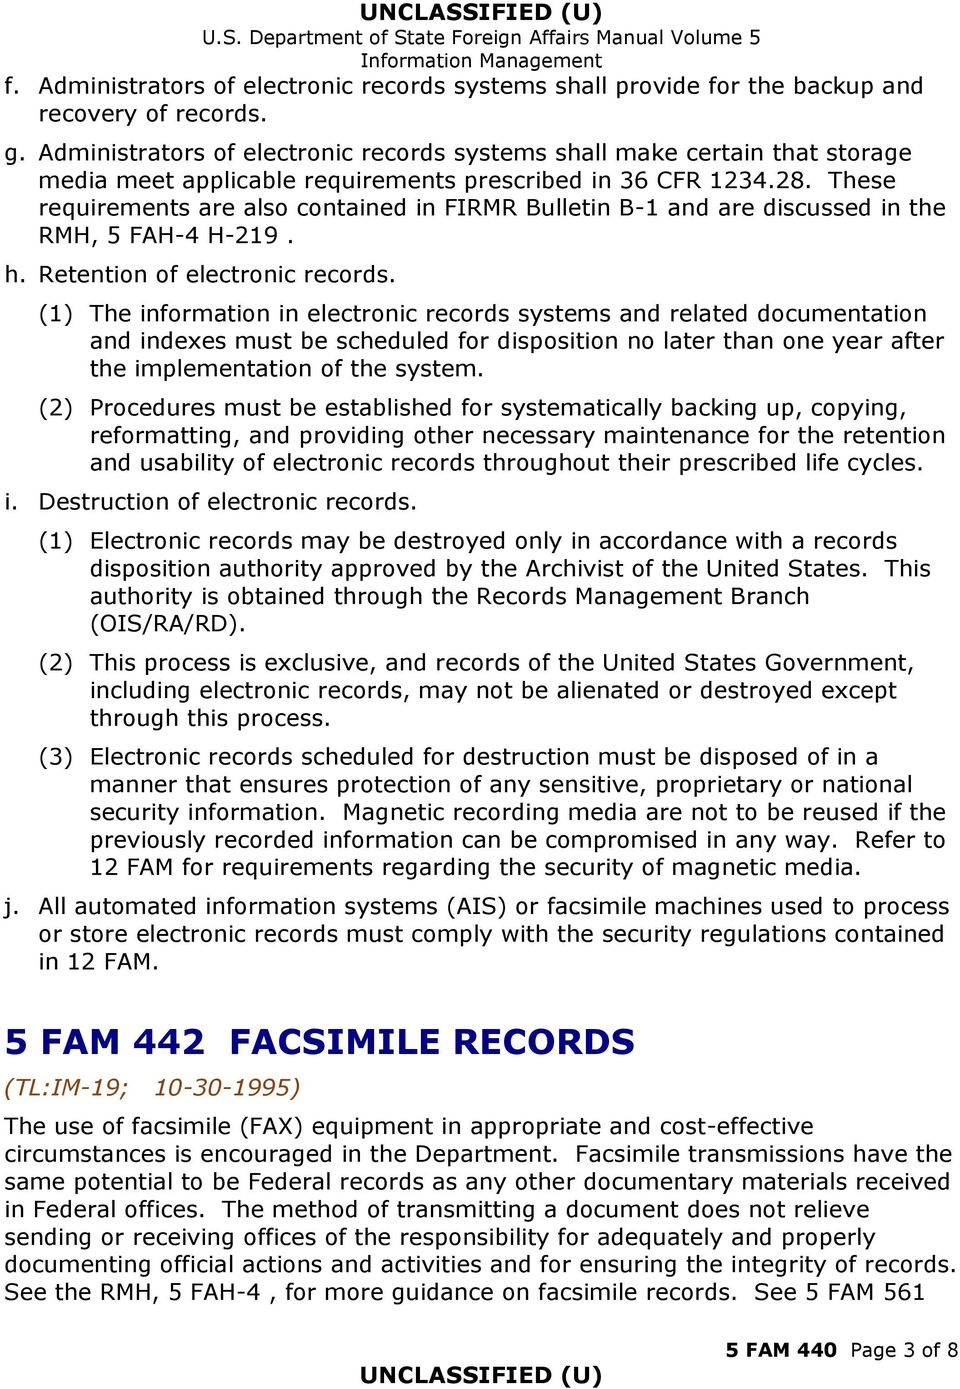 These requirements are also contained in FIRMR Bulletin B-1 and are discussed in the RMH, 5 FAH-4 H-219. h. Retention of electronic records.